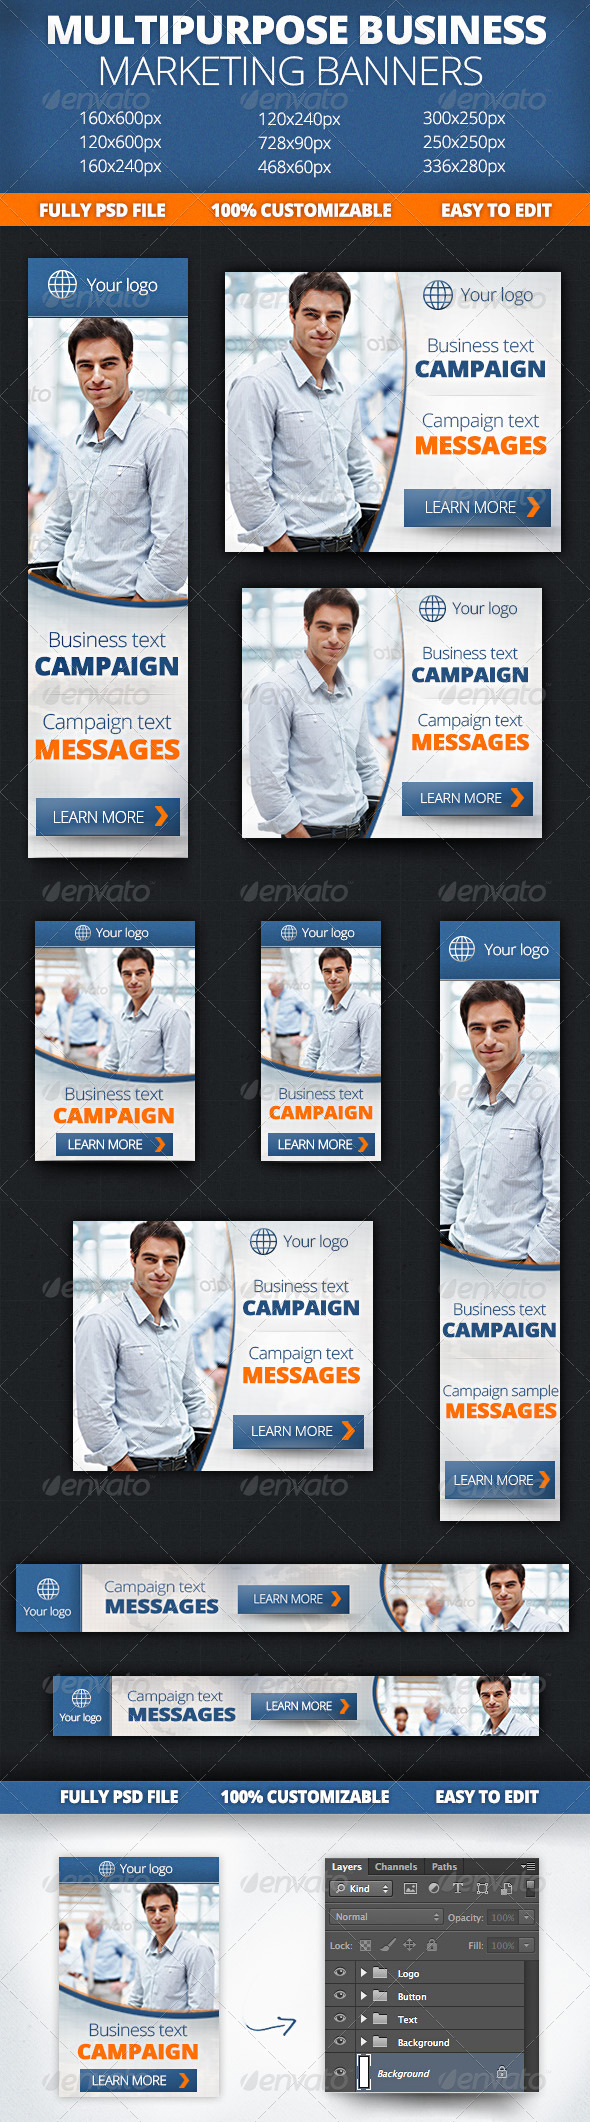 GraphicRiver Multipurpose Business Marketing Banners 4716311